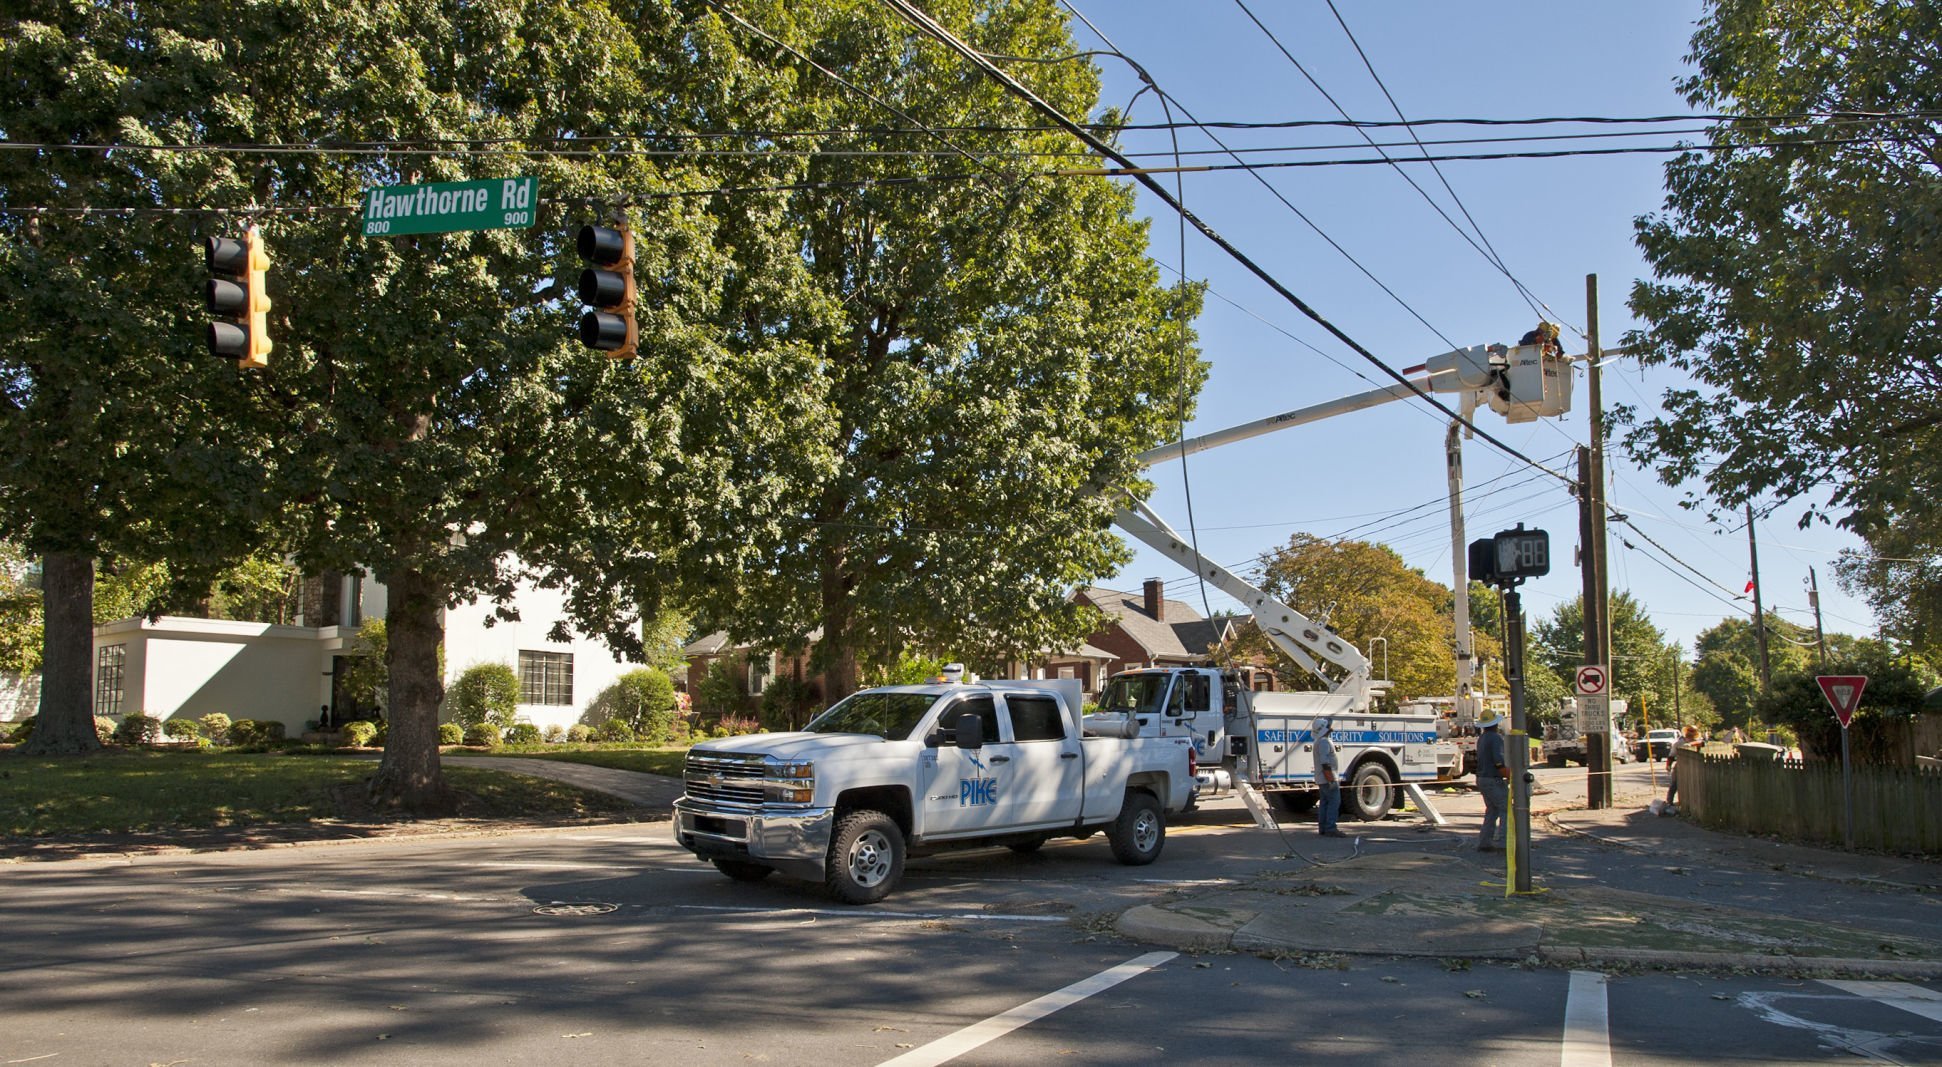 Duke Energy restores power to more of its customers   Winston Salem Journal